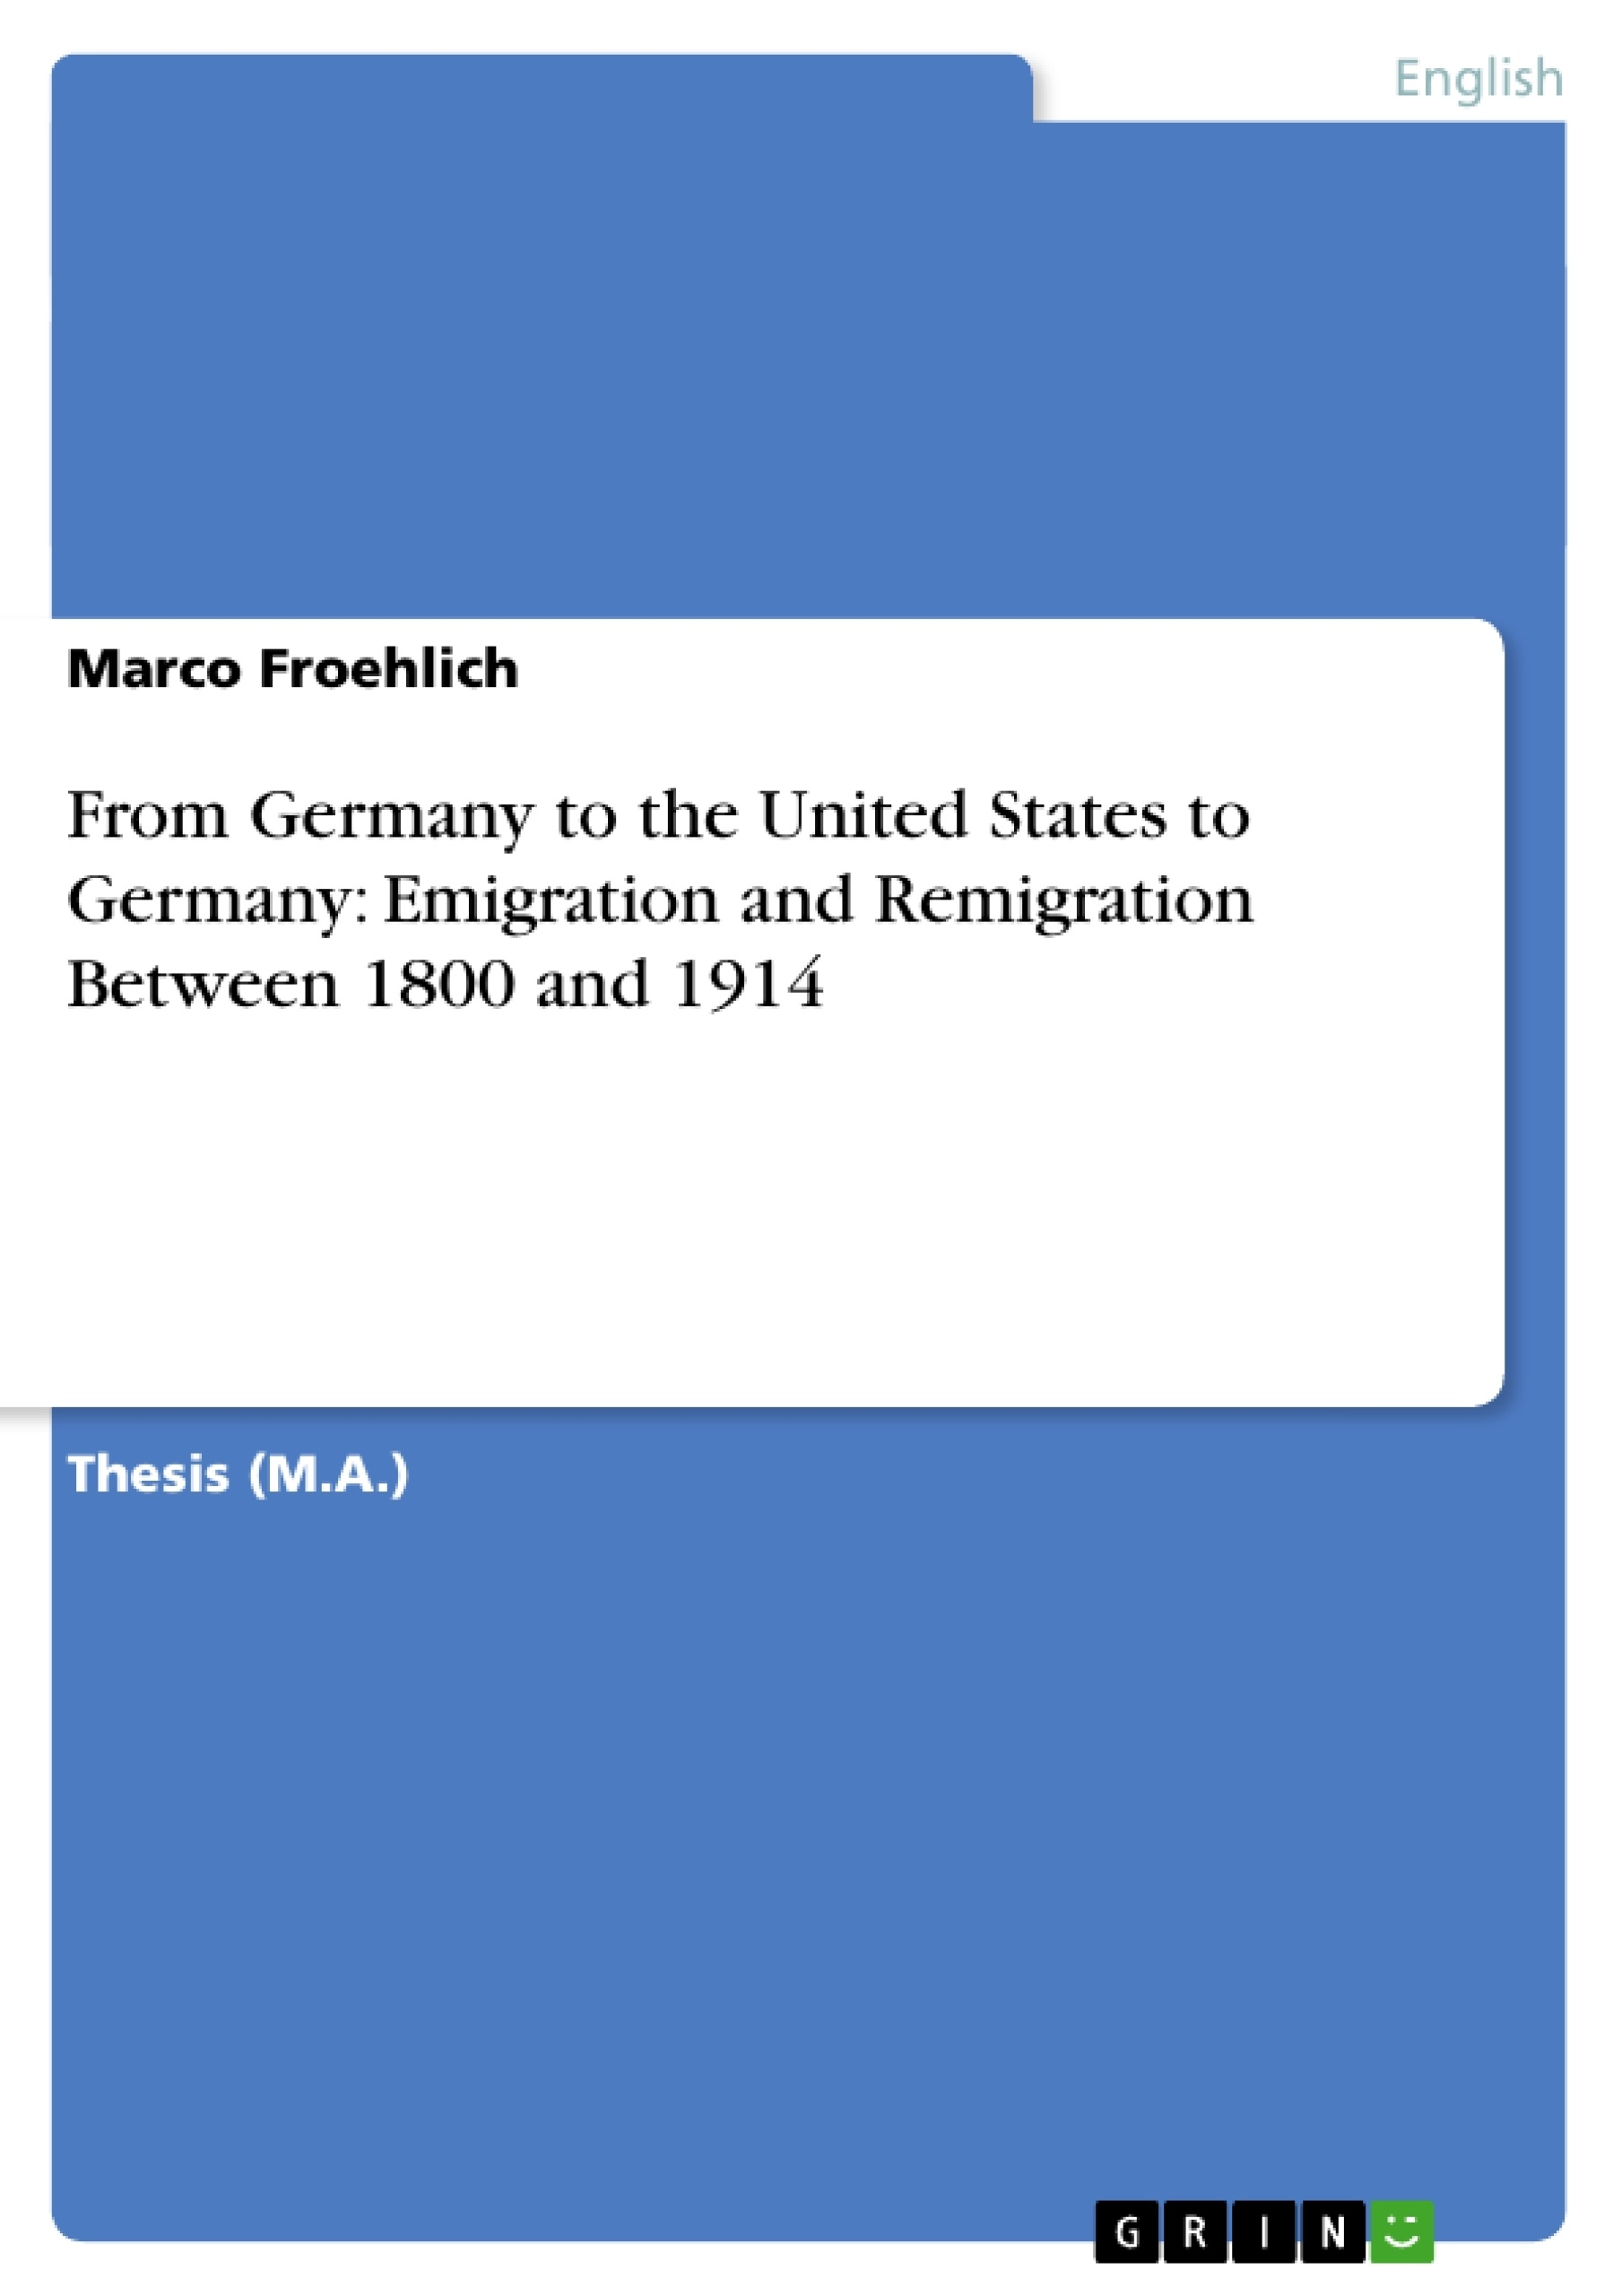 Title: From Germany to the United States to Germany: Emigration and Remigration Between 1800 and 1914